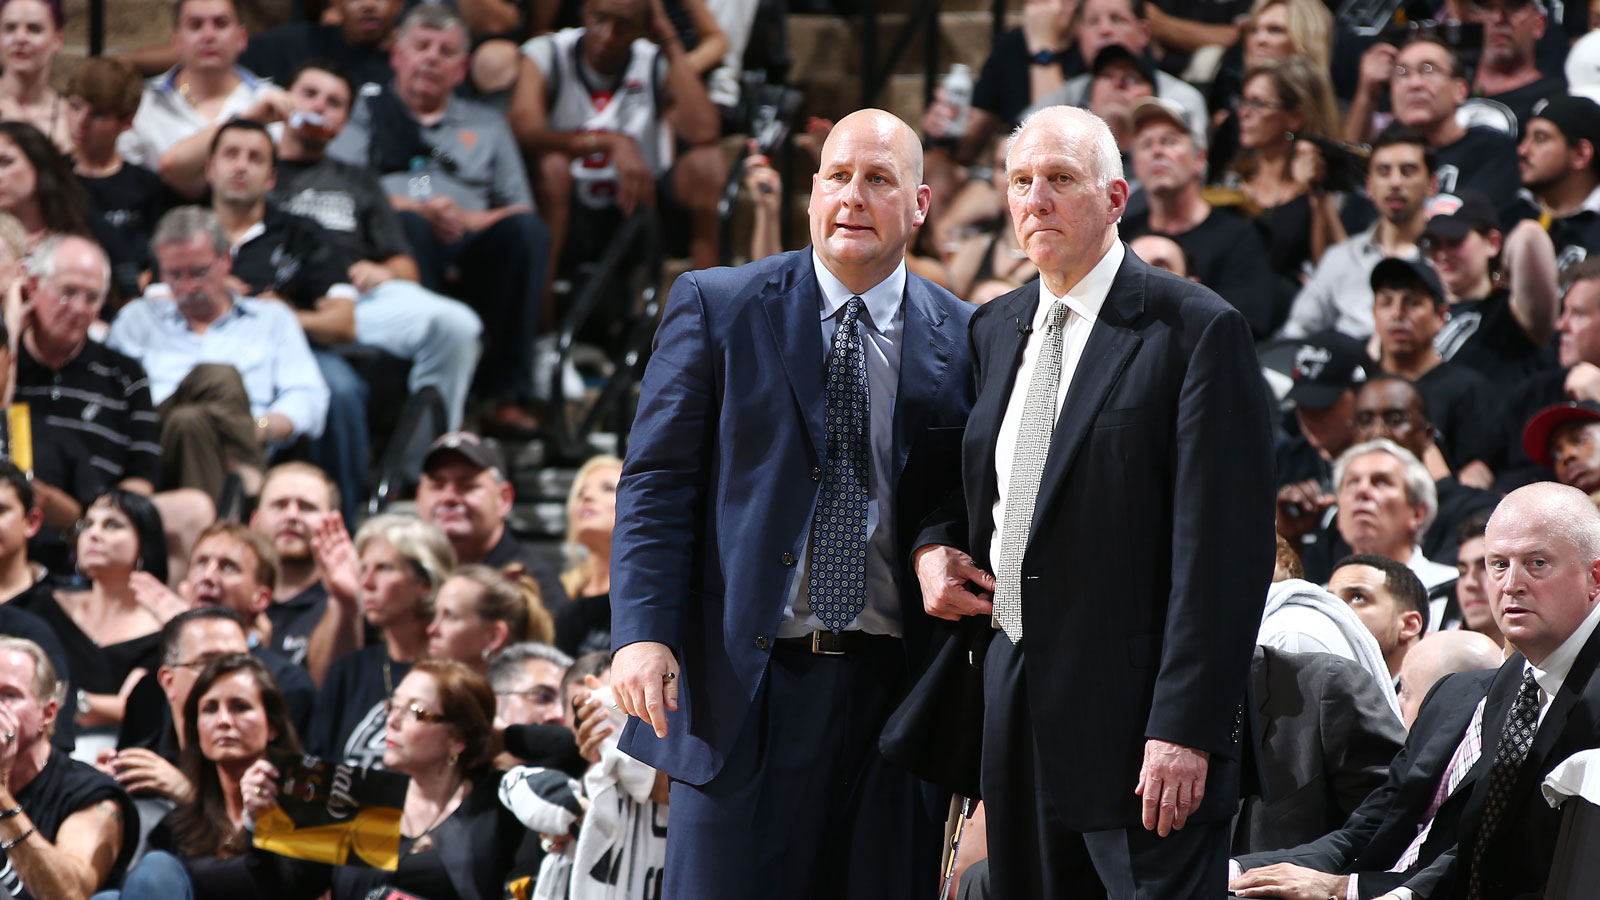 Jim Boylen knows what it takes to win says Gregg Popovich